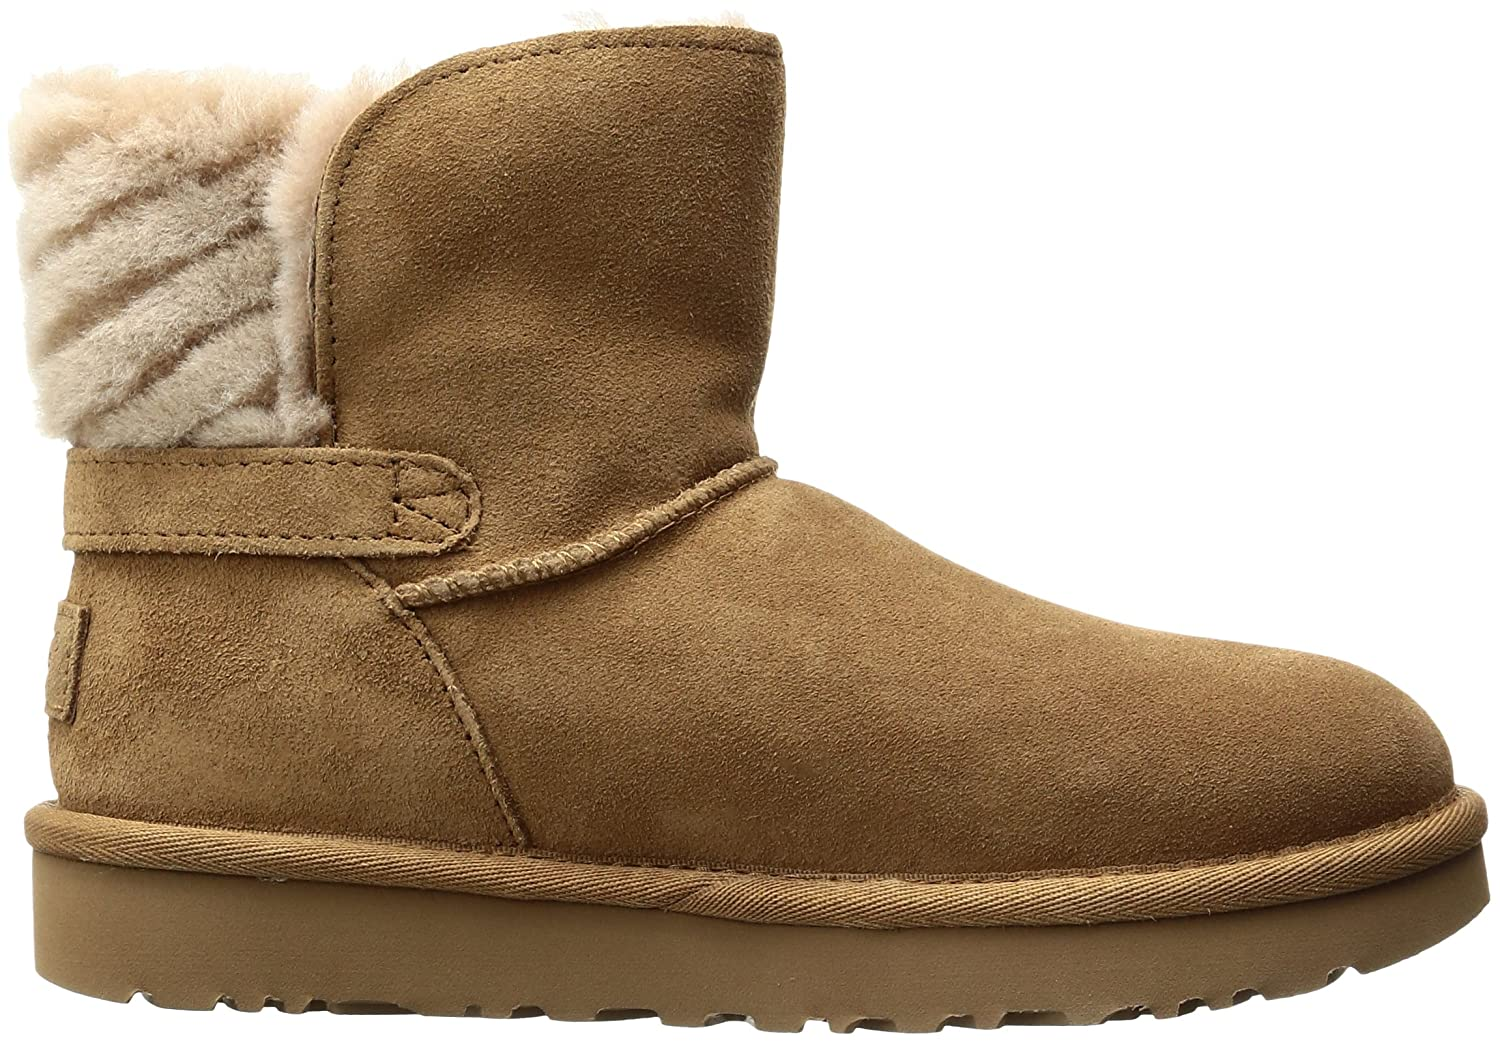 kids ugg outlet online store ugg boots amazon.com